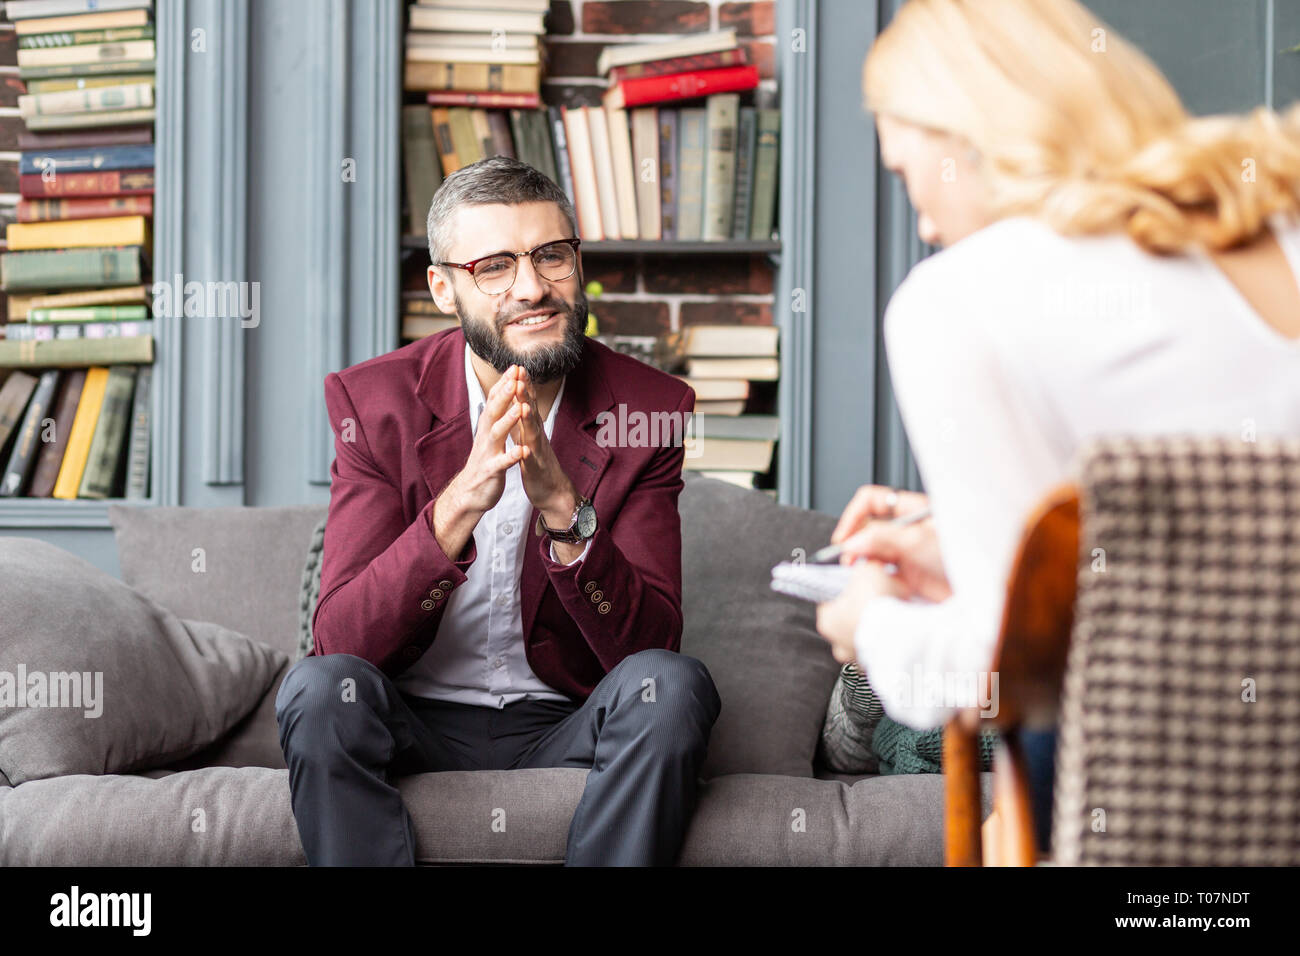 Bearded man smiling after successful talk with private therapist Stock Photo